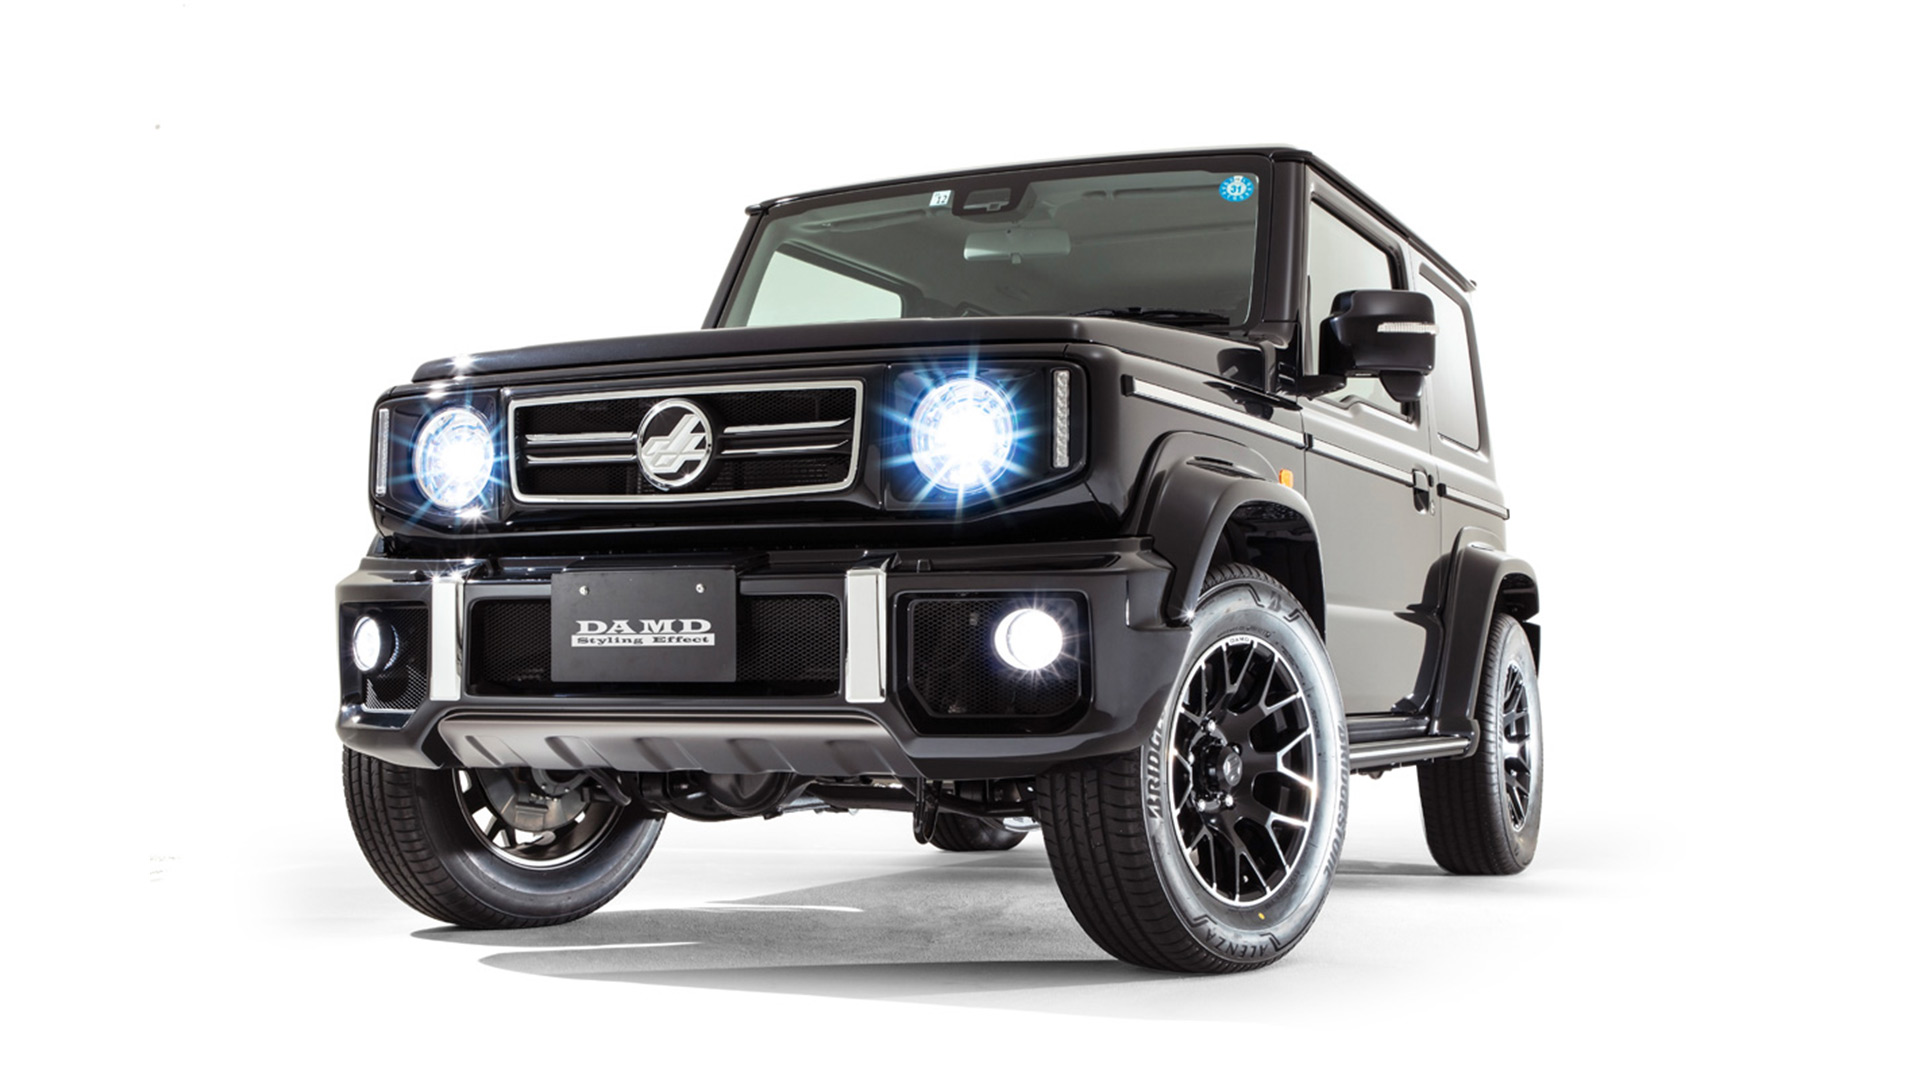 This Body Kit Turns A Suzuki Jimny Into An Amazing Land Rover Defender Replica Motoring Research